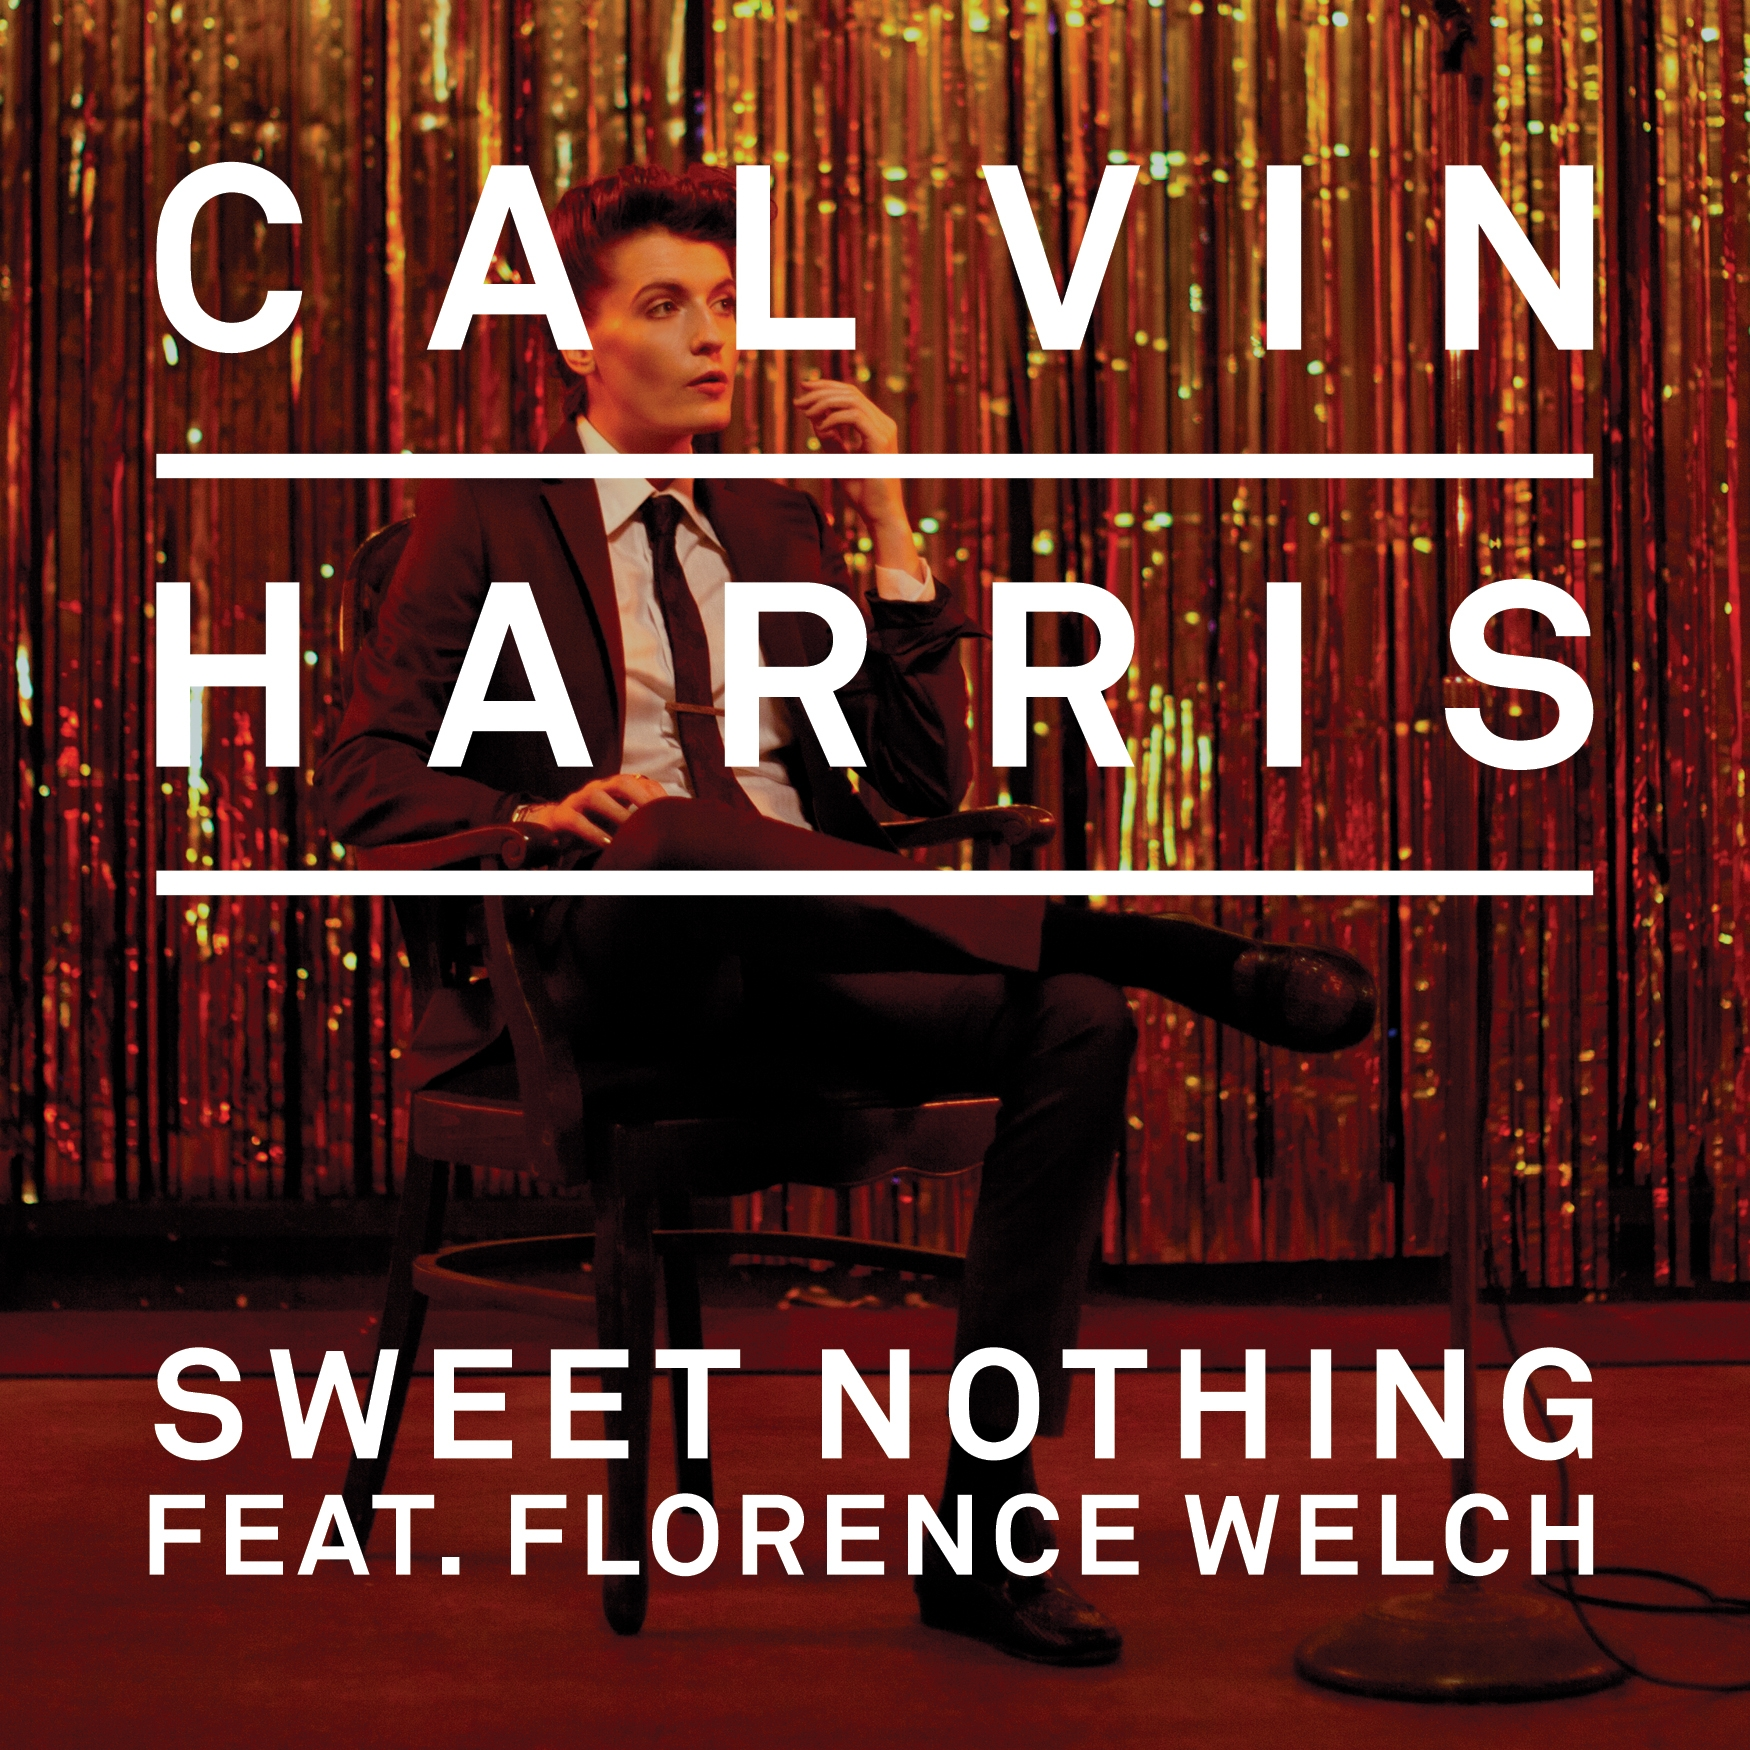 Sweet Nothing (2012) - Calvin Harris ft. Florence Welch